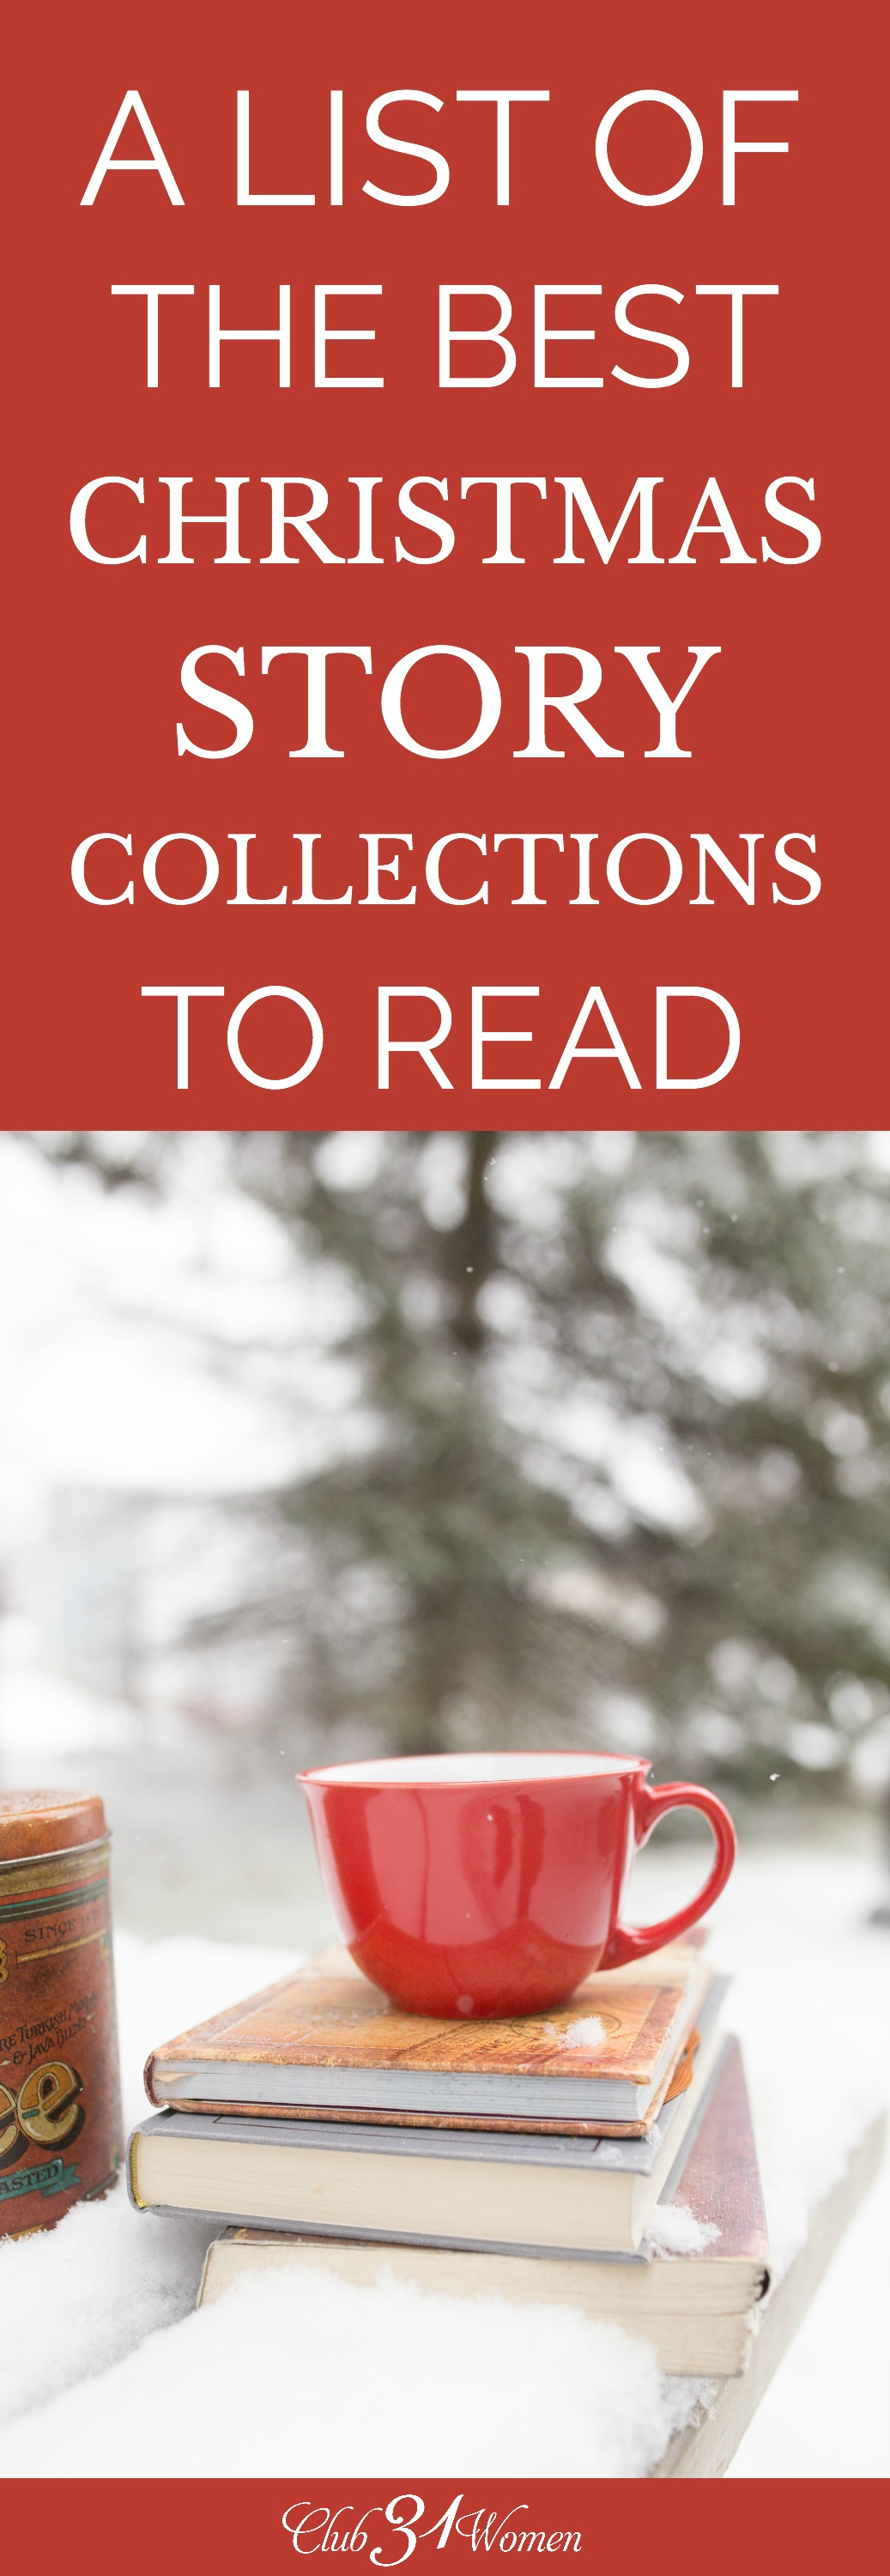 If you're looking for some good Christmas Collections to read yourself or as a family this year, this list has some family favorites! via @Club31Women